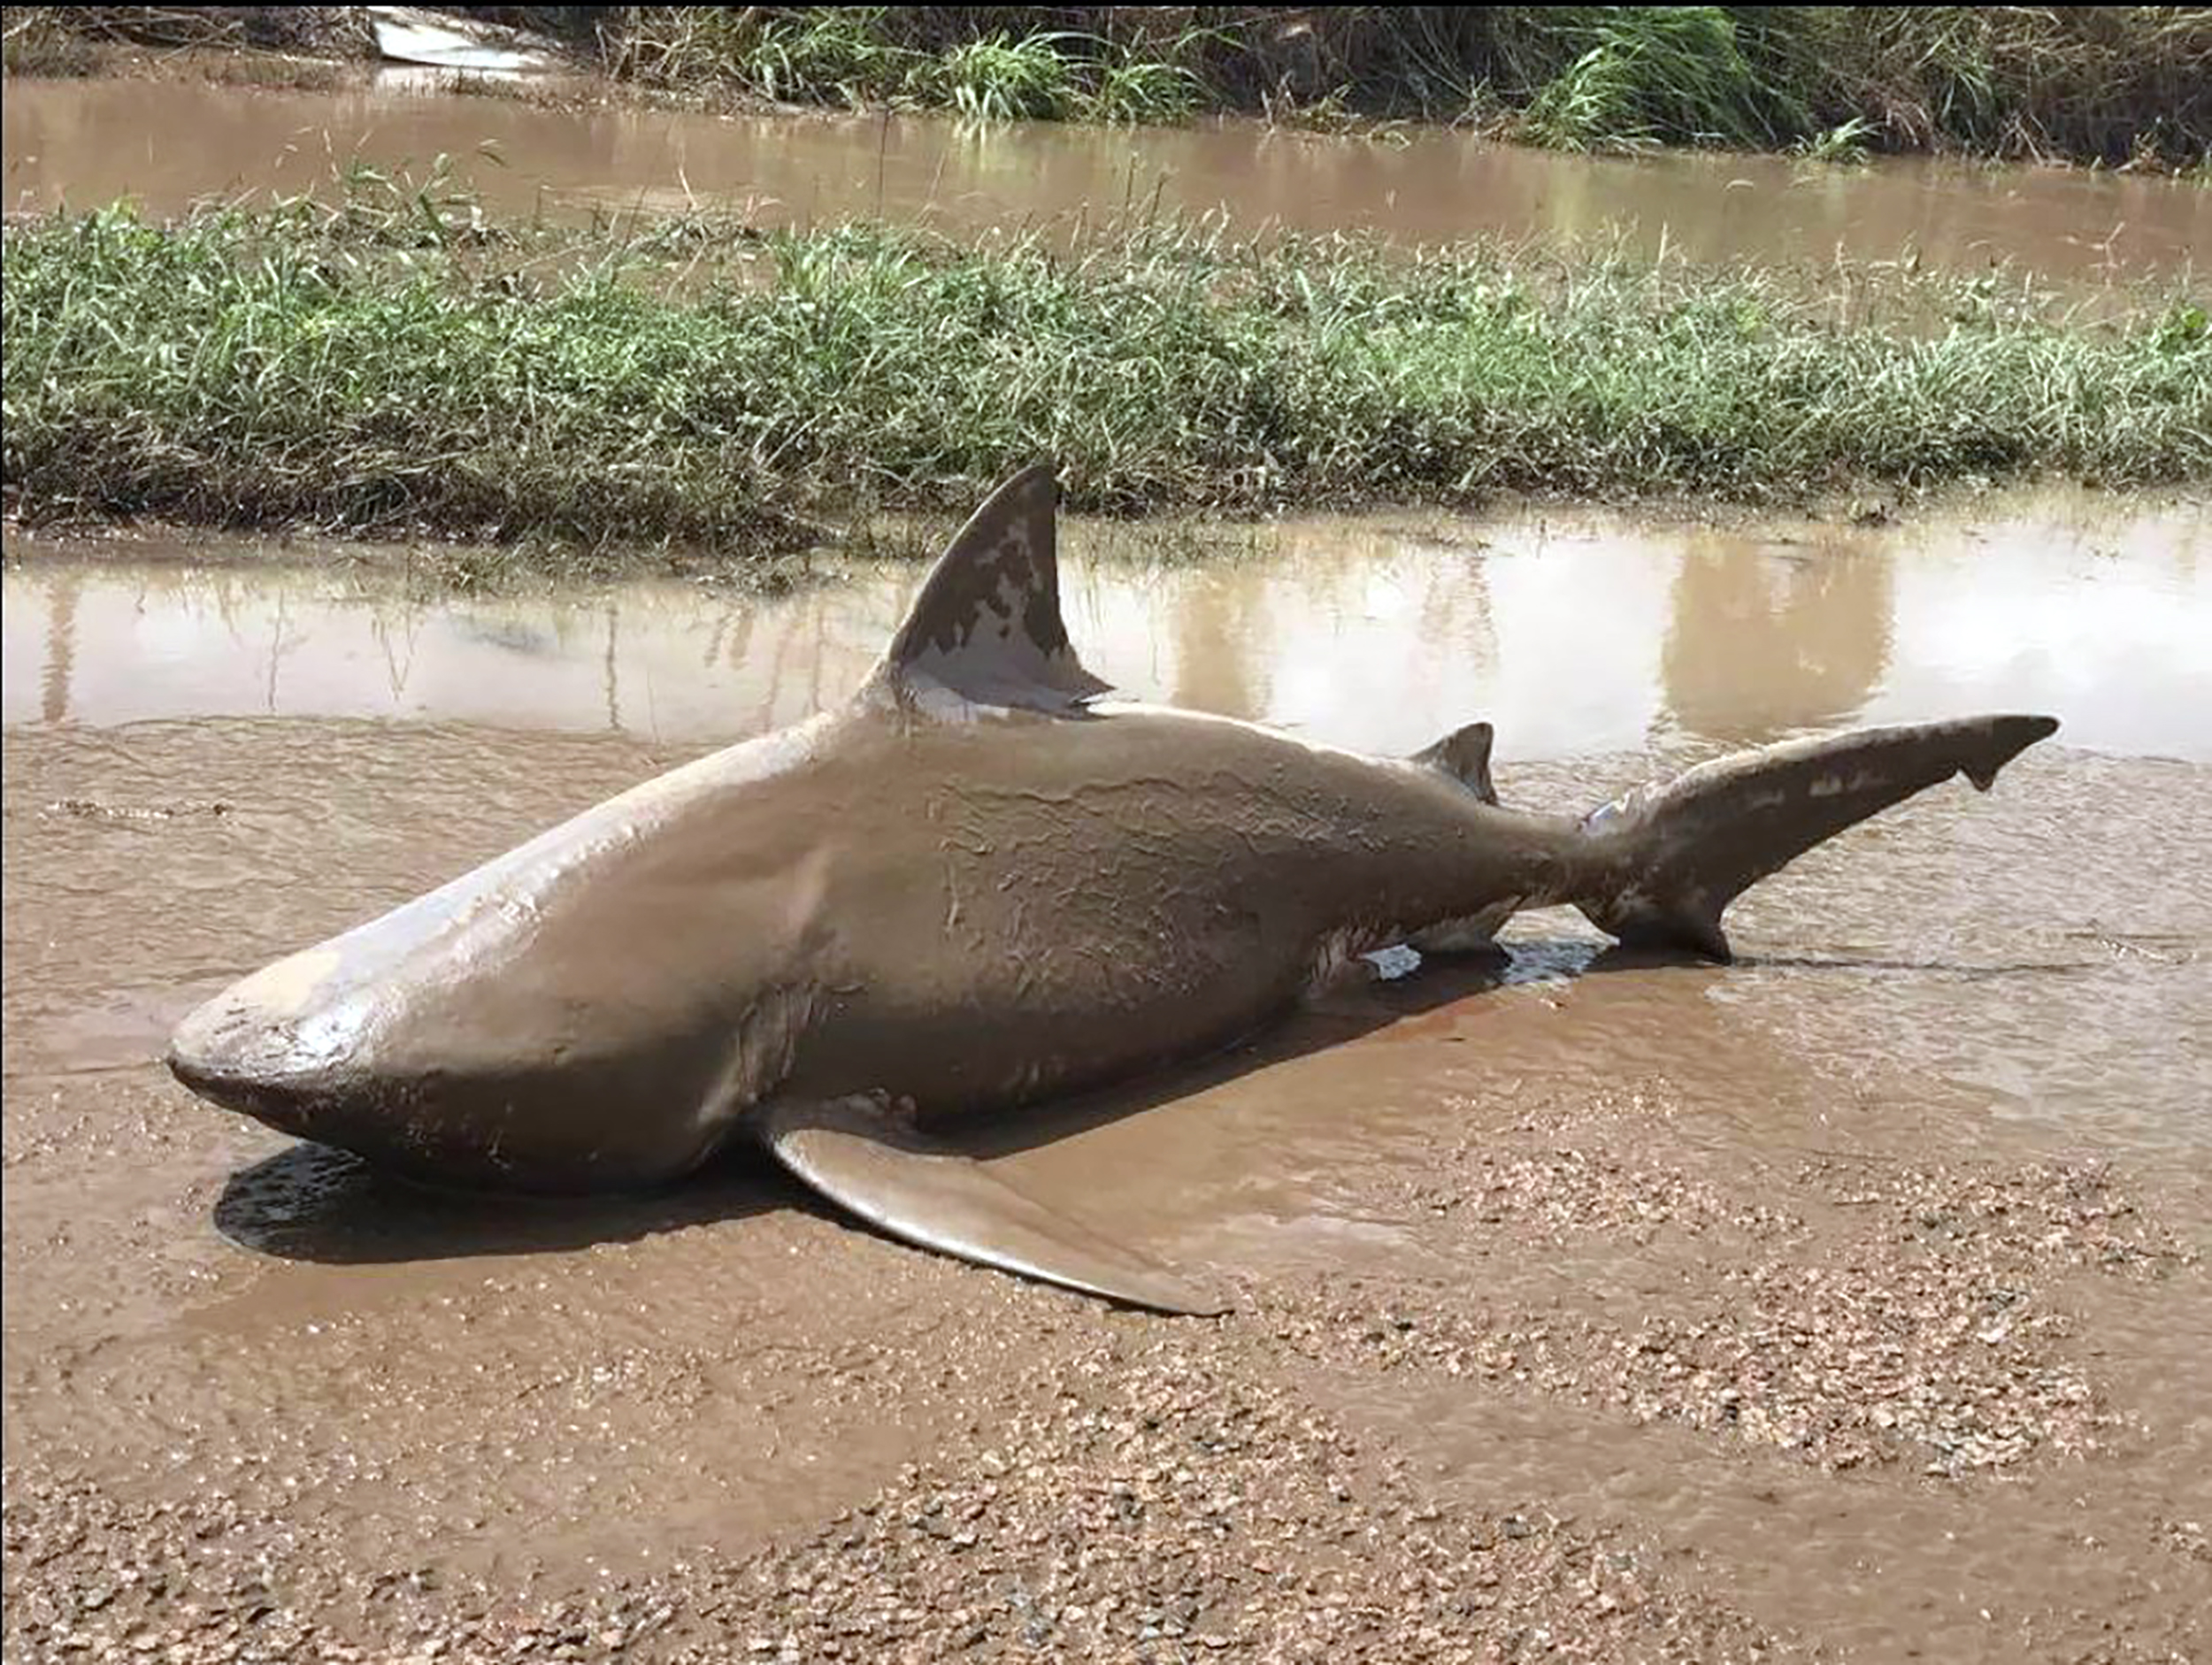 This handout photo from the Queensland Police Service taken on March 30, 2017 shows a bull shark washed up on a road near the town of Ayr.